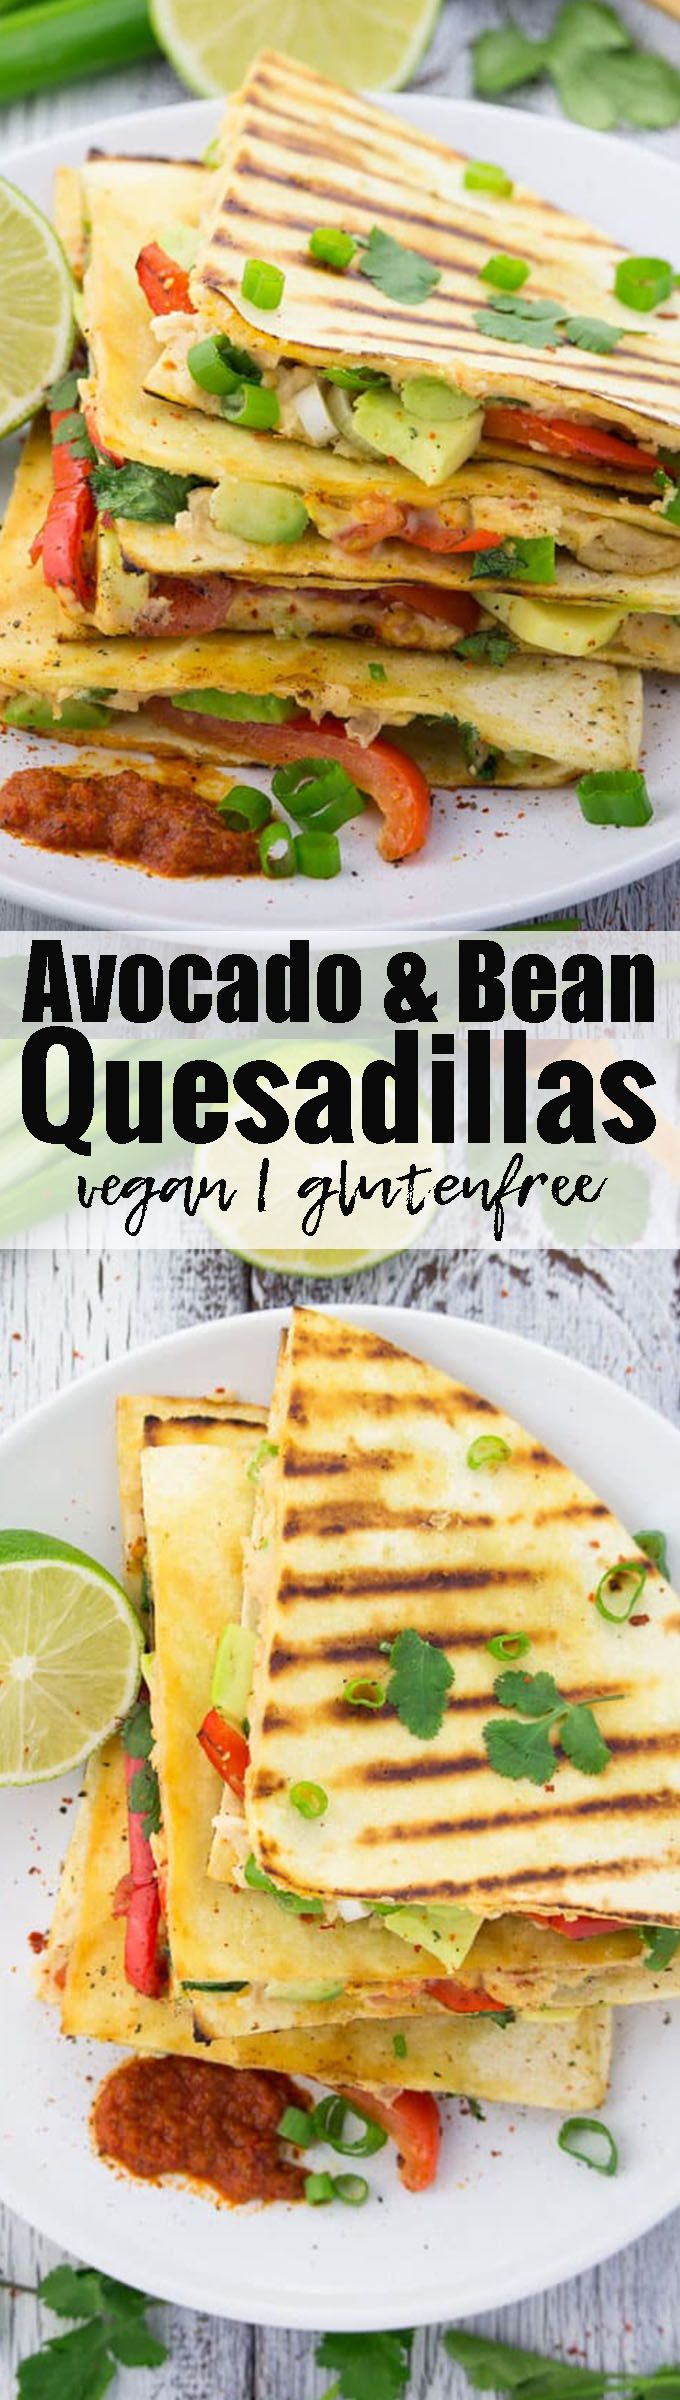 These vegan quesadillas are the perfect vegetarian comfort food! They're super easy to make and so delicious! Vegan food at its best! Find more vegan recipes at veganheaven.org <3